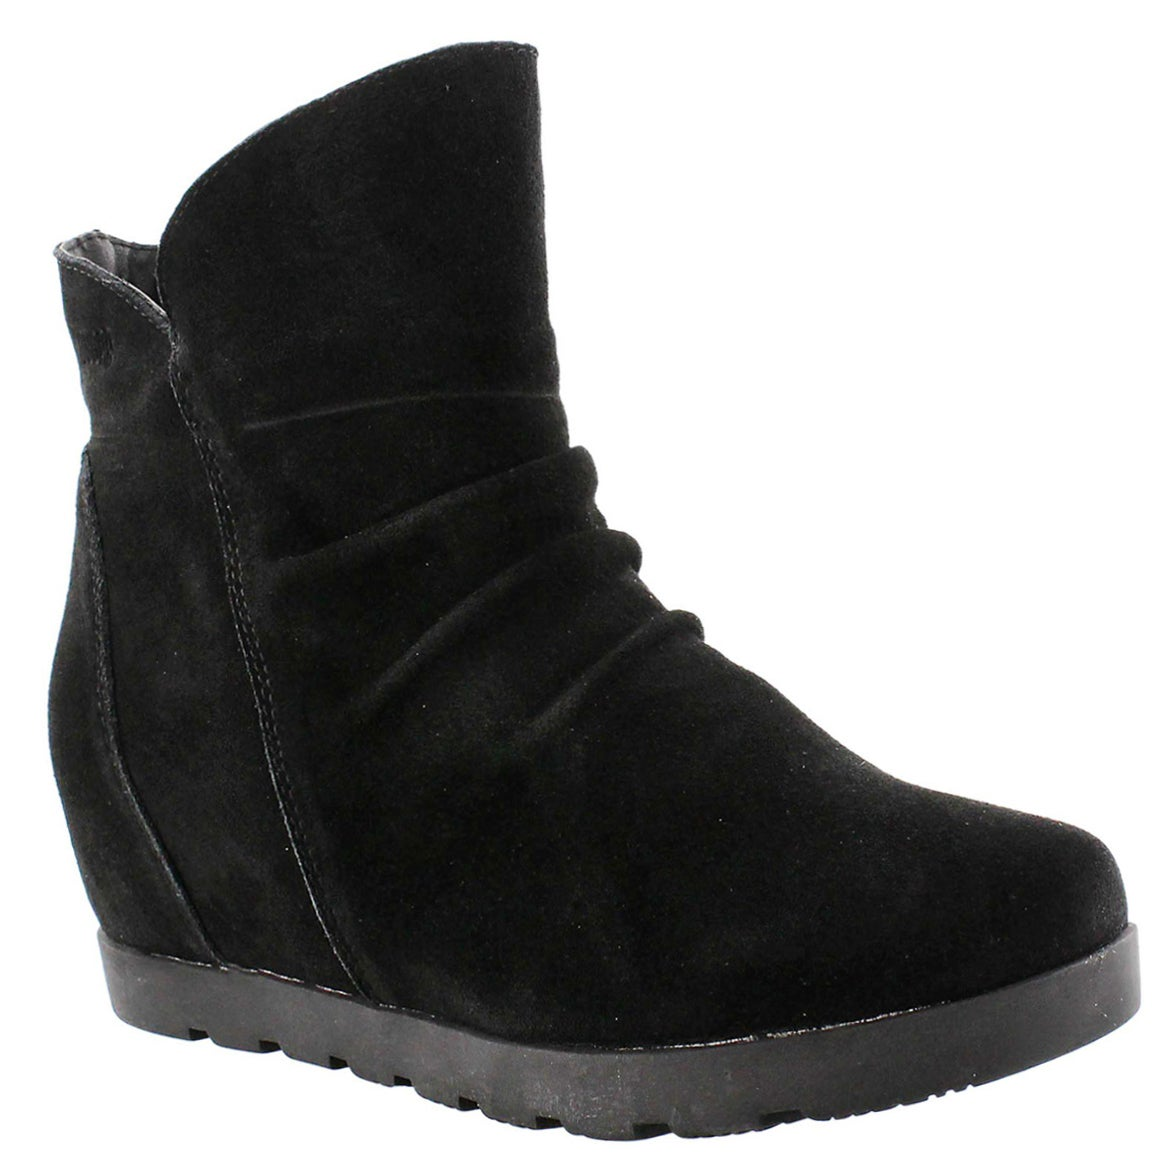 Lds Astro suede black wtpf ankle bootie